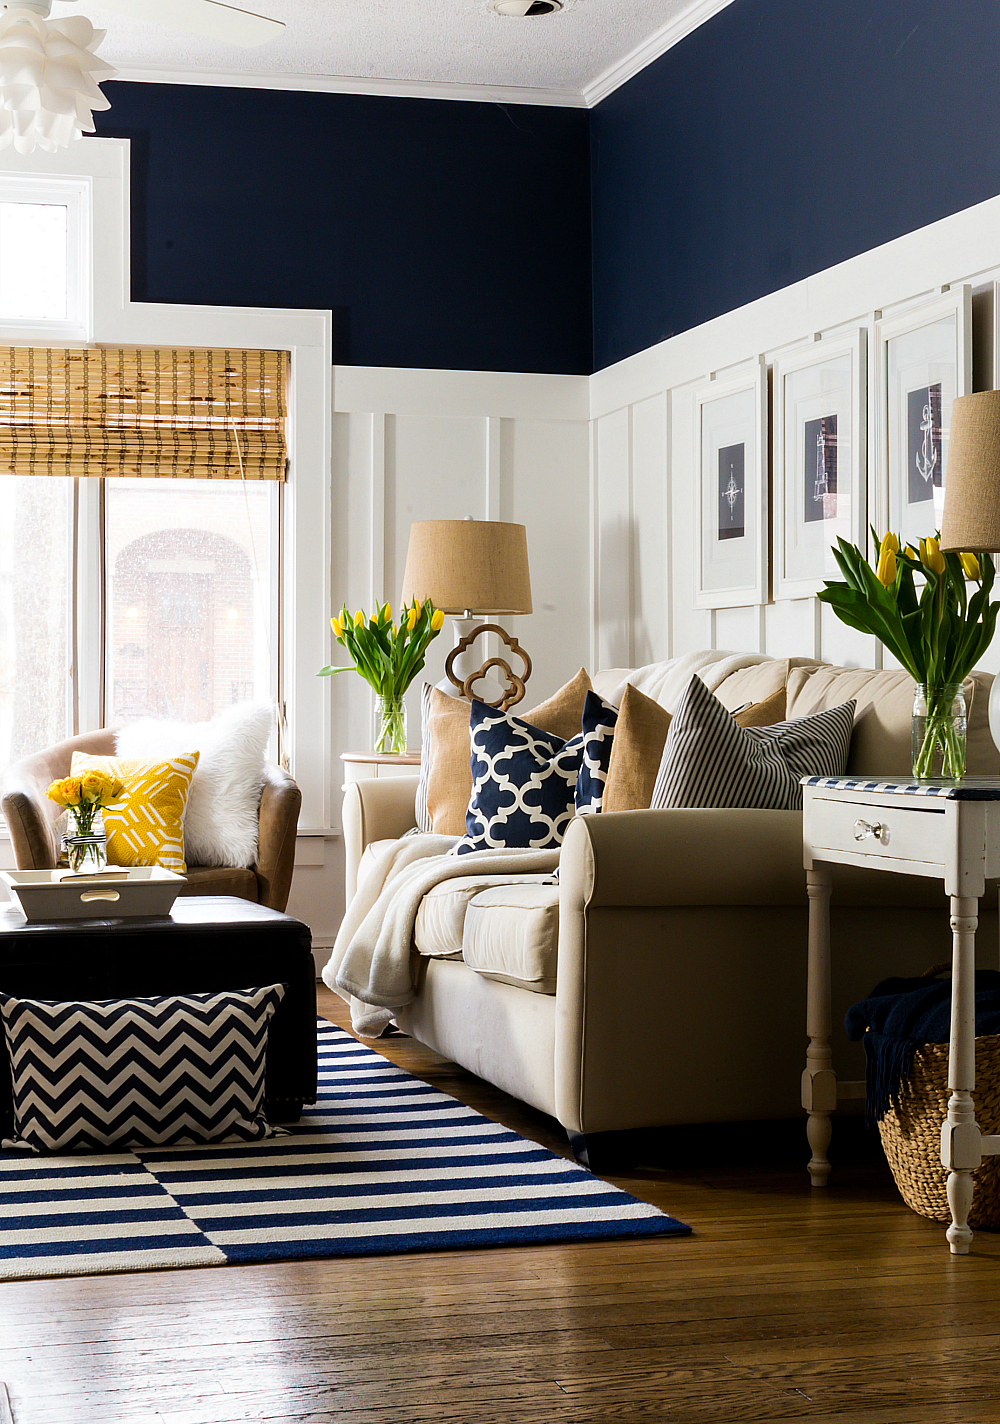 Spring Decorating Ideas In Navy And Yellow